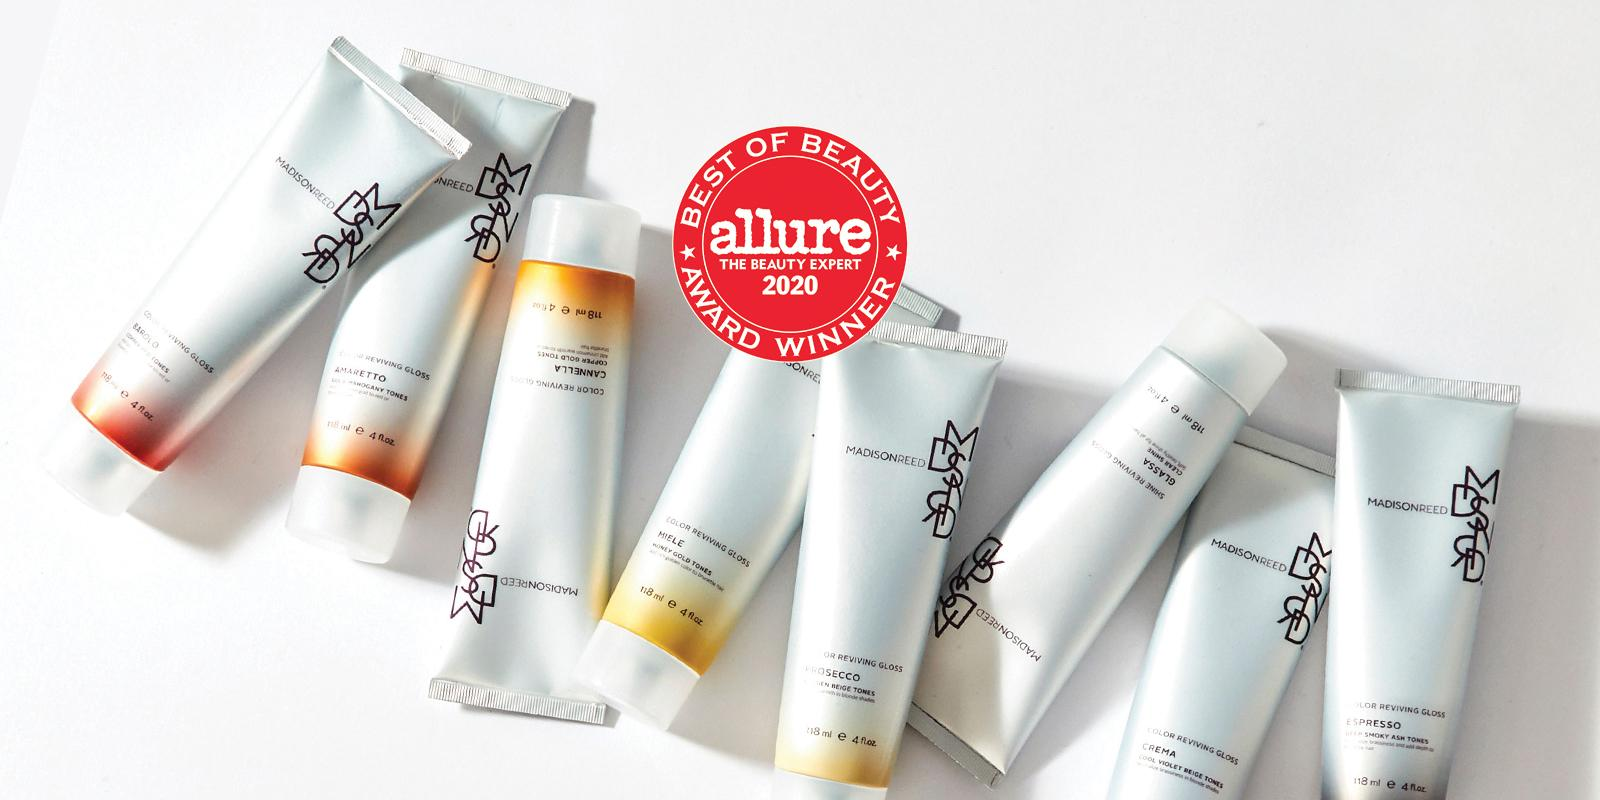 Madison Reed Hair Gloss with award winning symbol from Allure